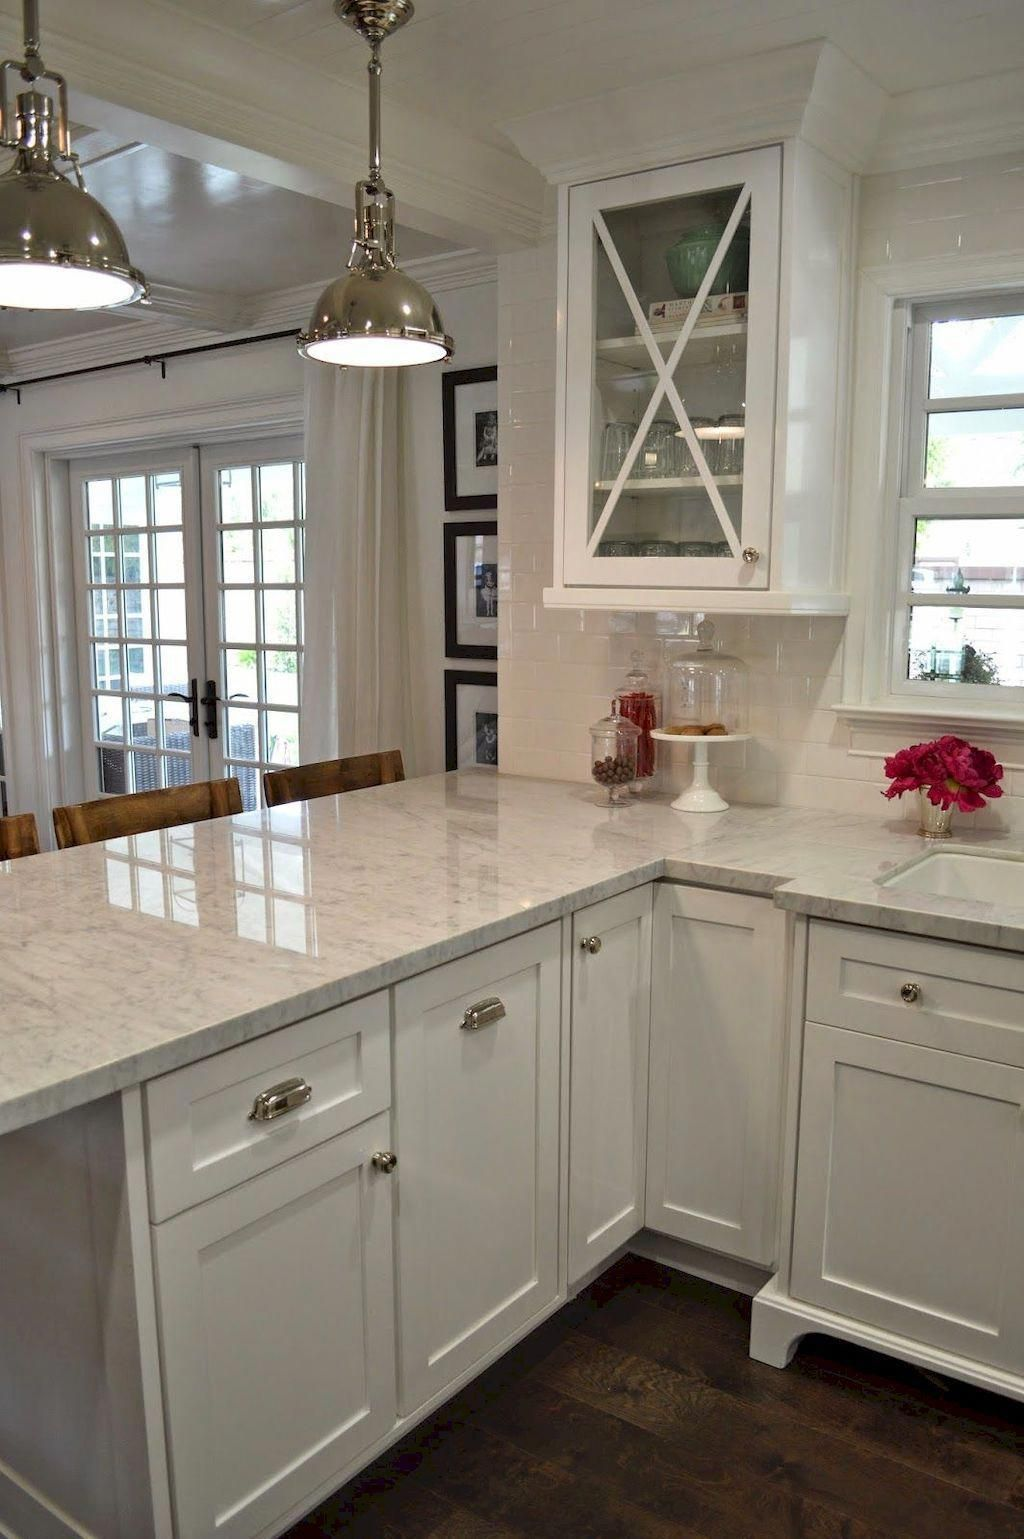 small kitchen design layout ideas hgtv browse photos of small kitchen designs discover inspiration for your remodel or upgrade with ideas storage organization layout and the 12 best kitchen remodel ideas design photos